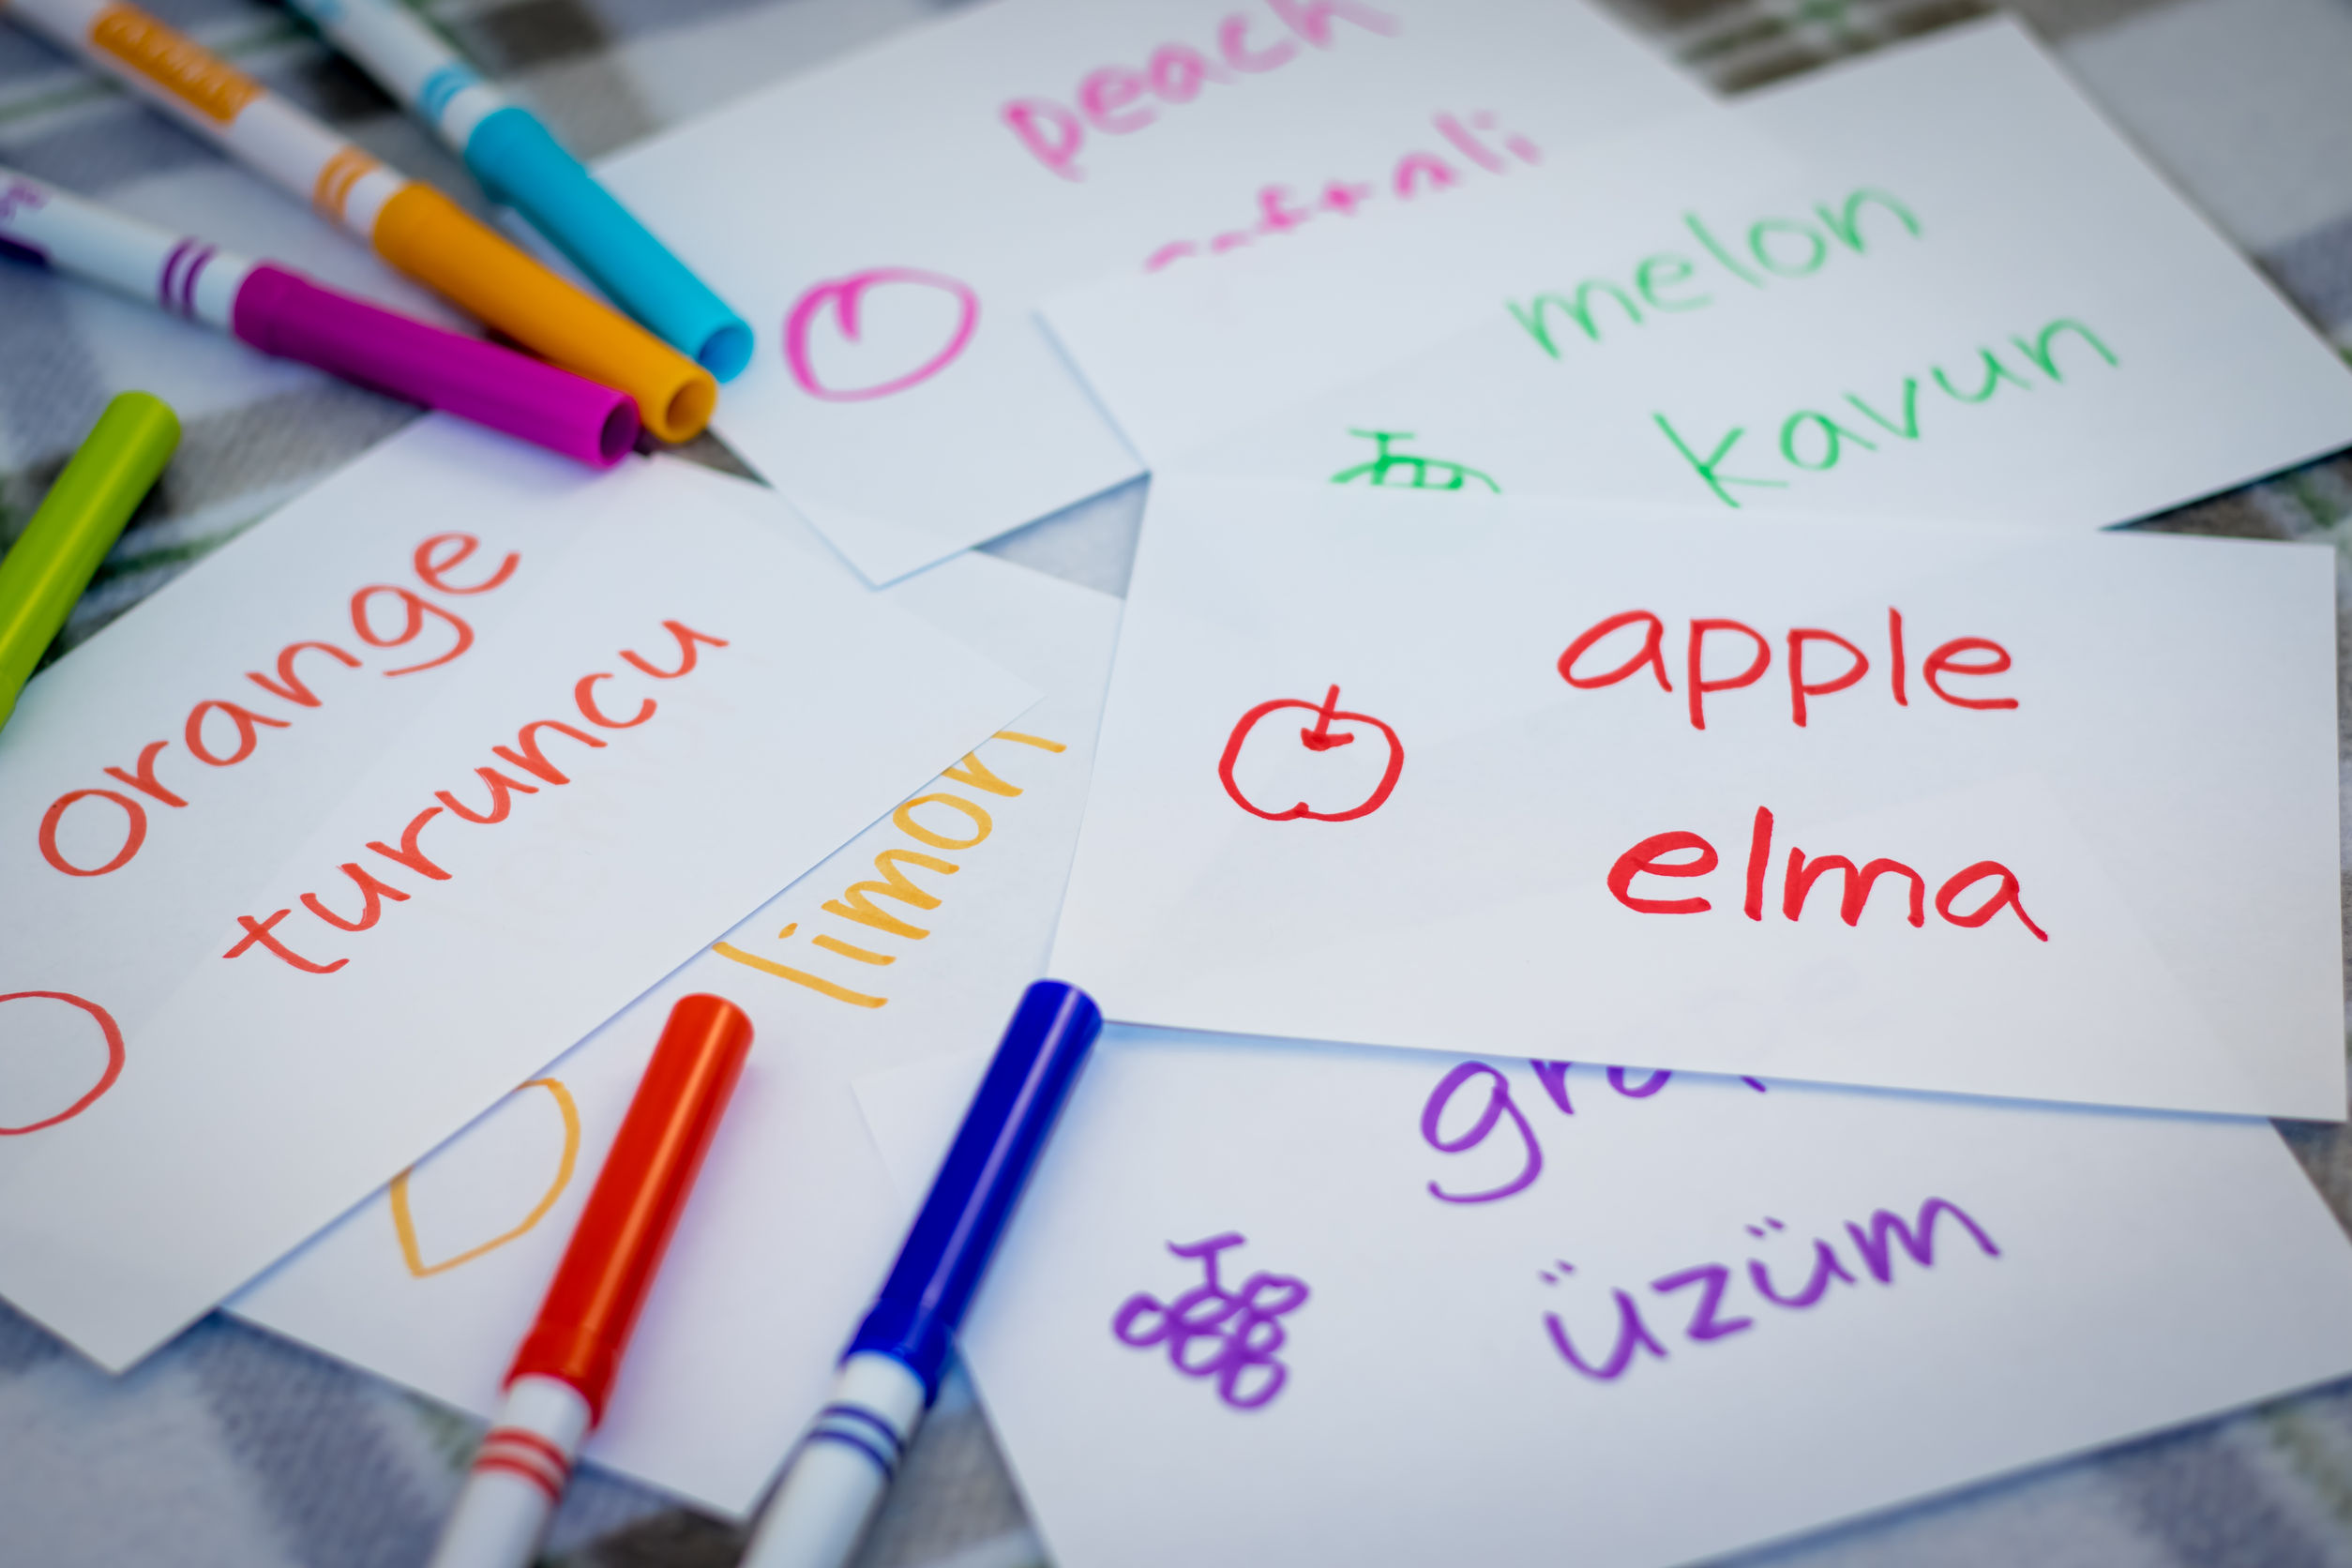 Learning Turkish Language with Fruits Name Flash Cards